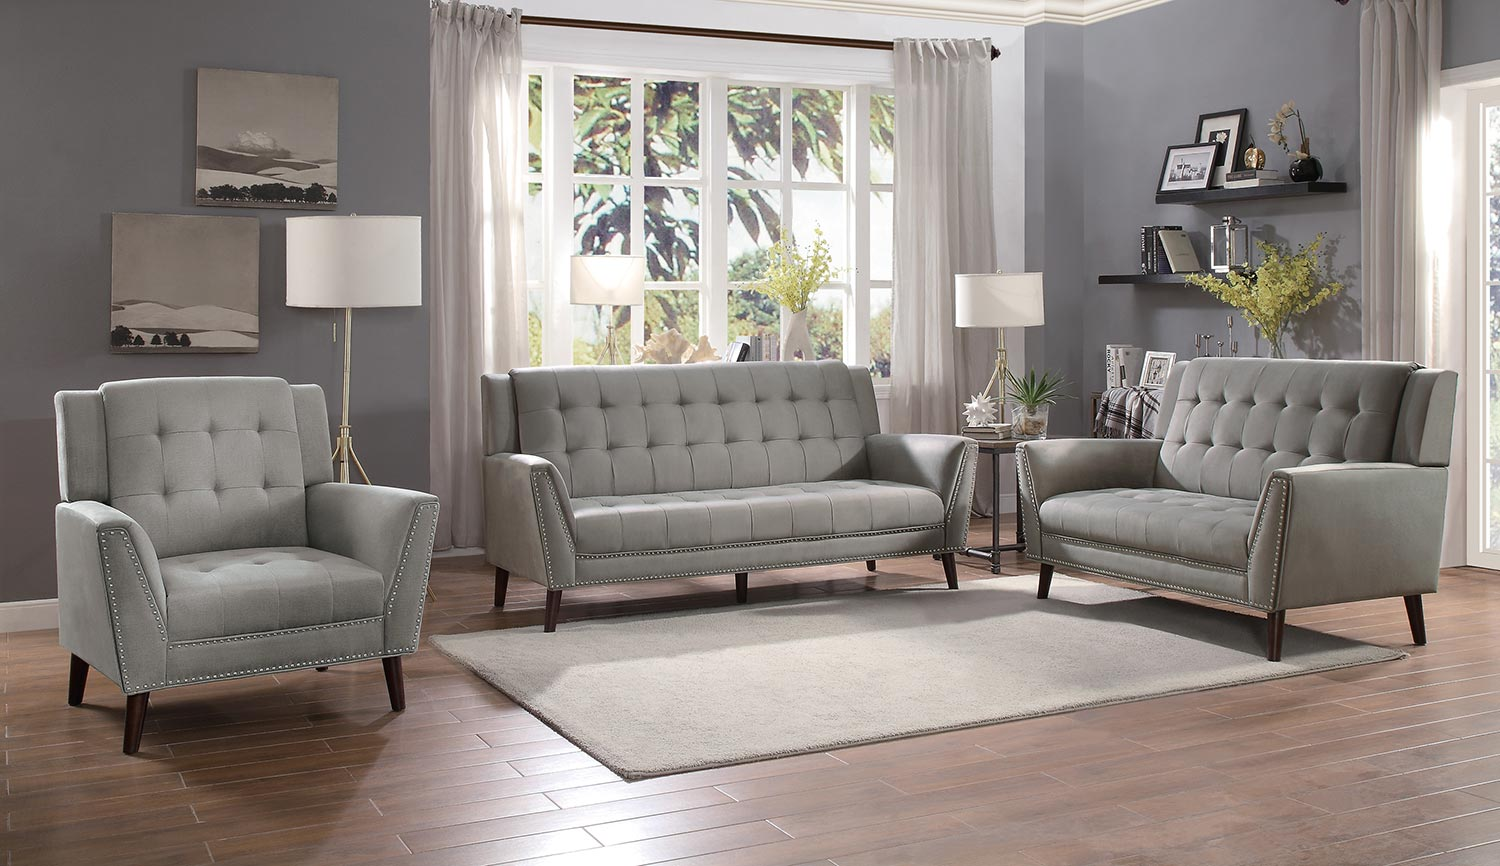 Homelegance Broadview Sofa Set - Brown